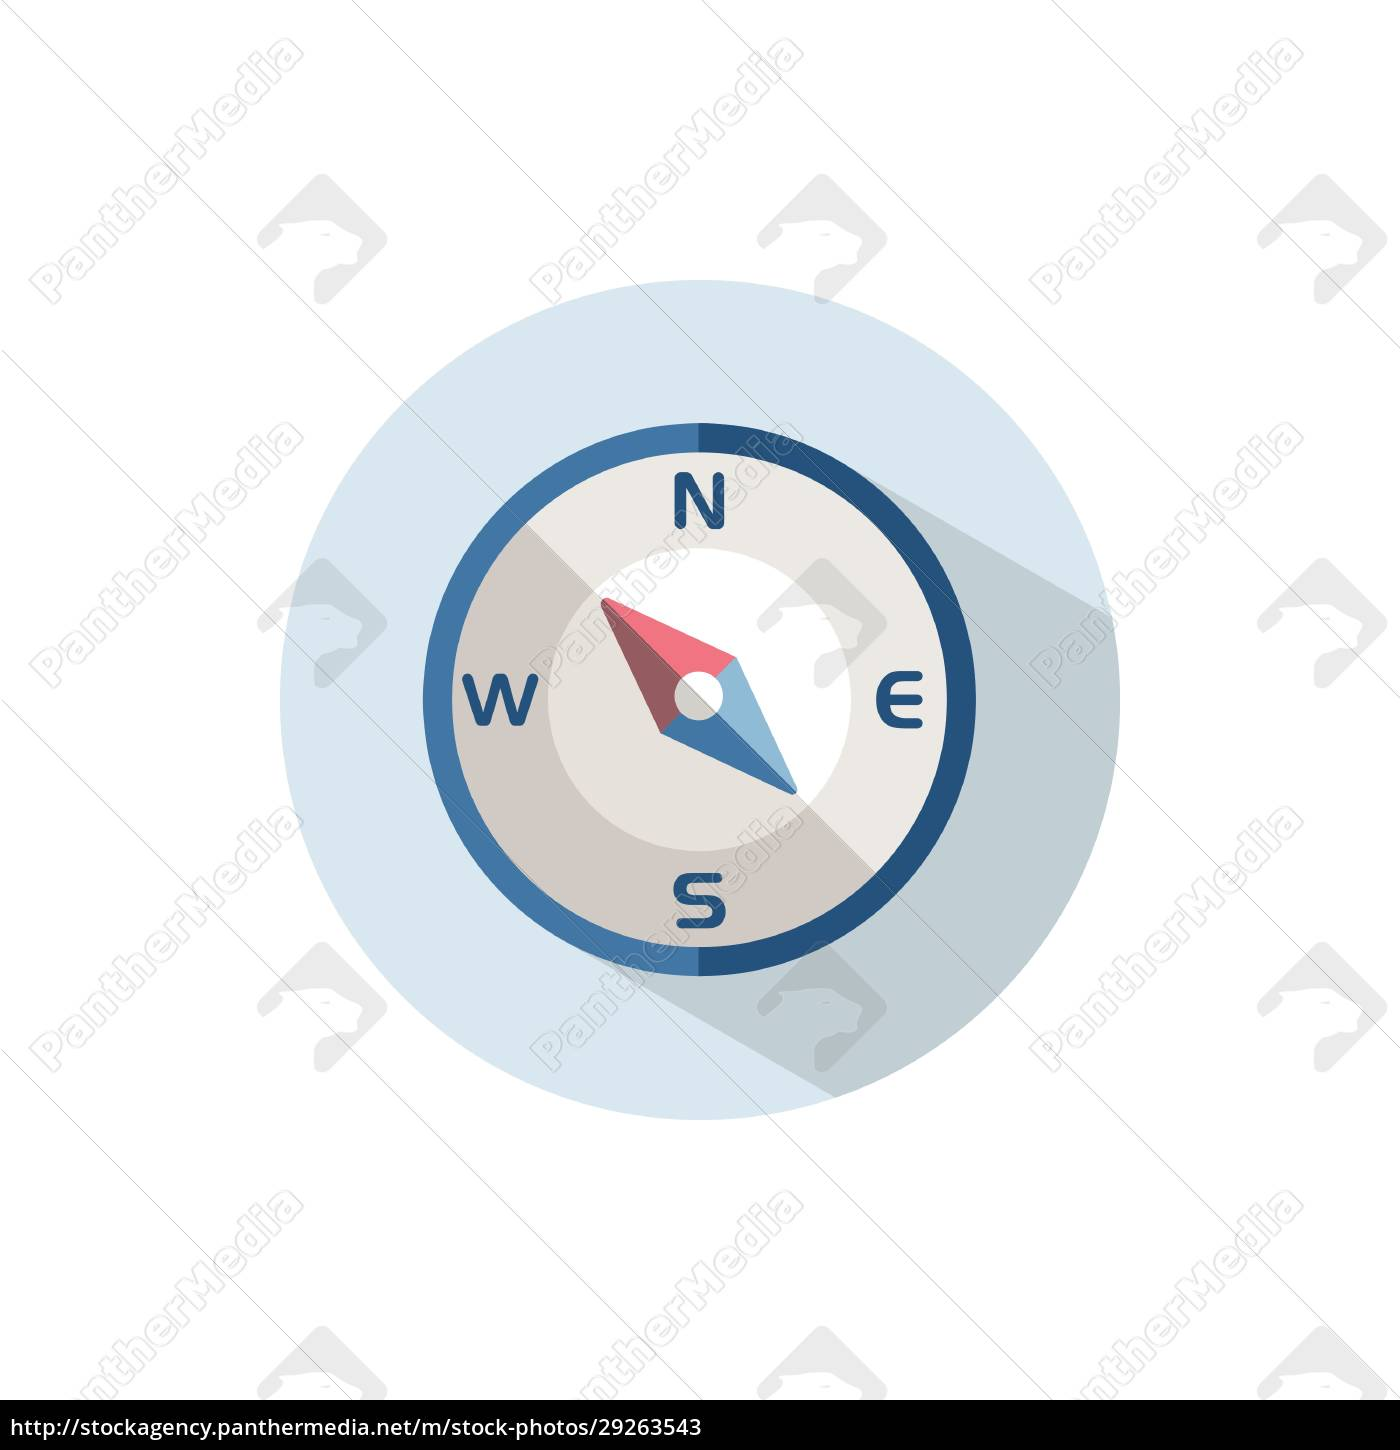 compass, north, west, direction., flat, icon - 29263543